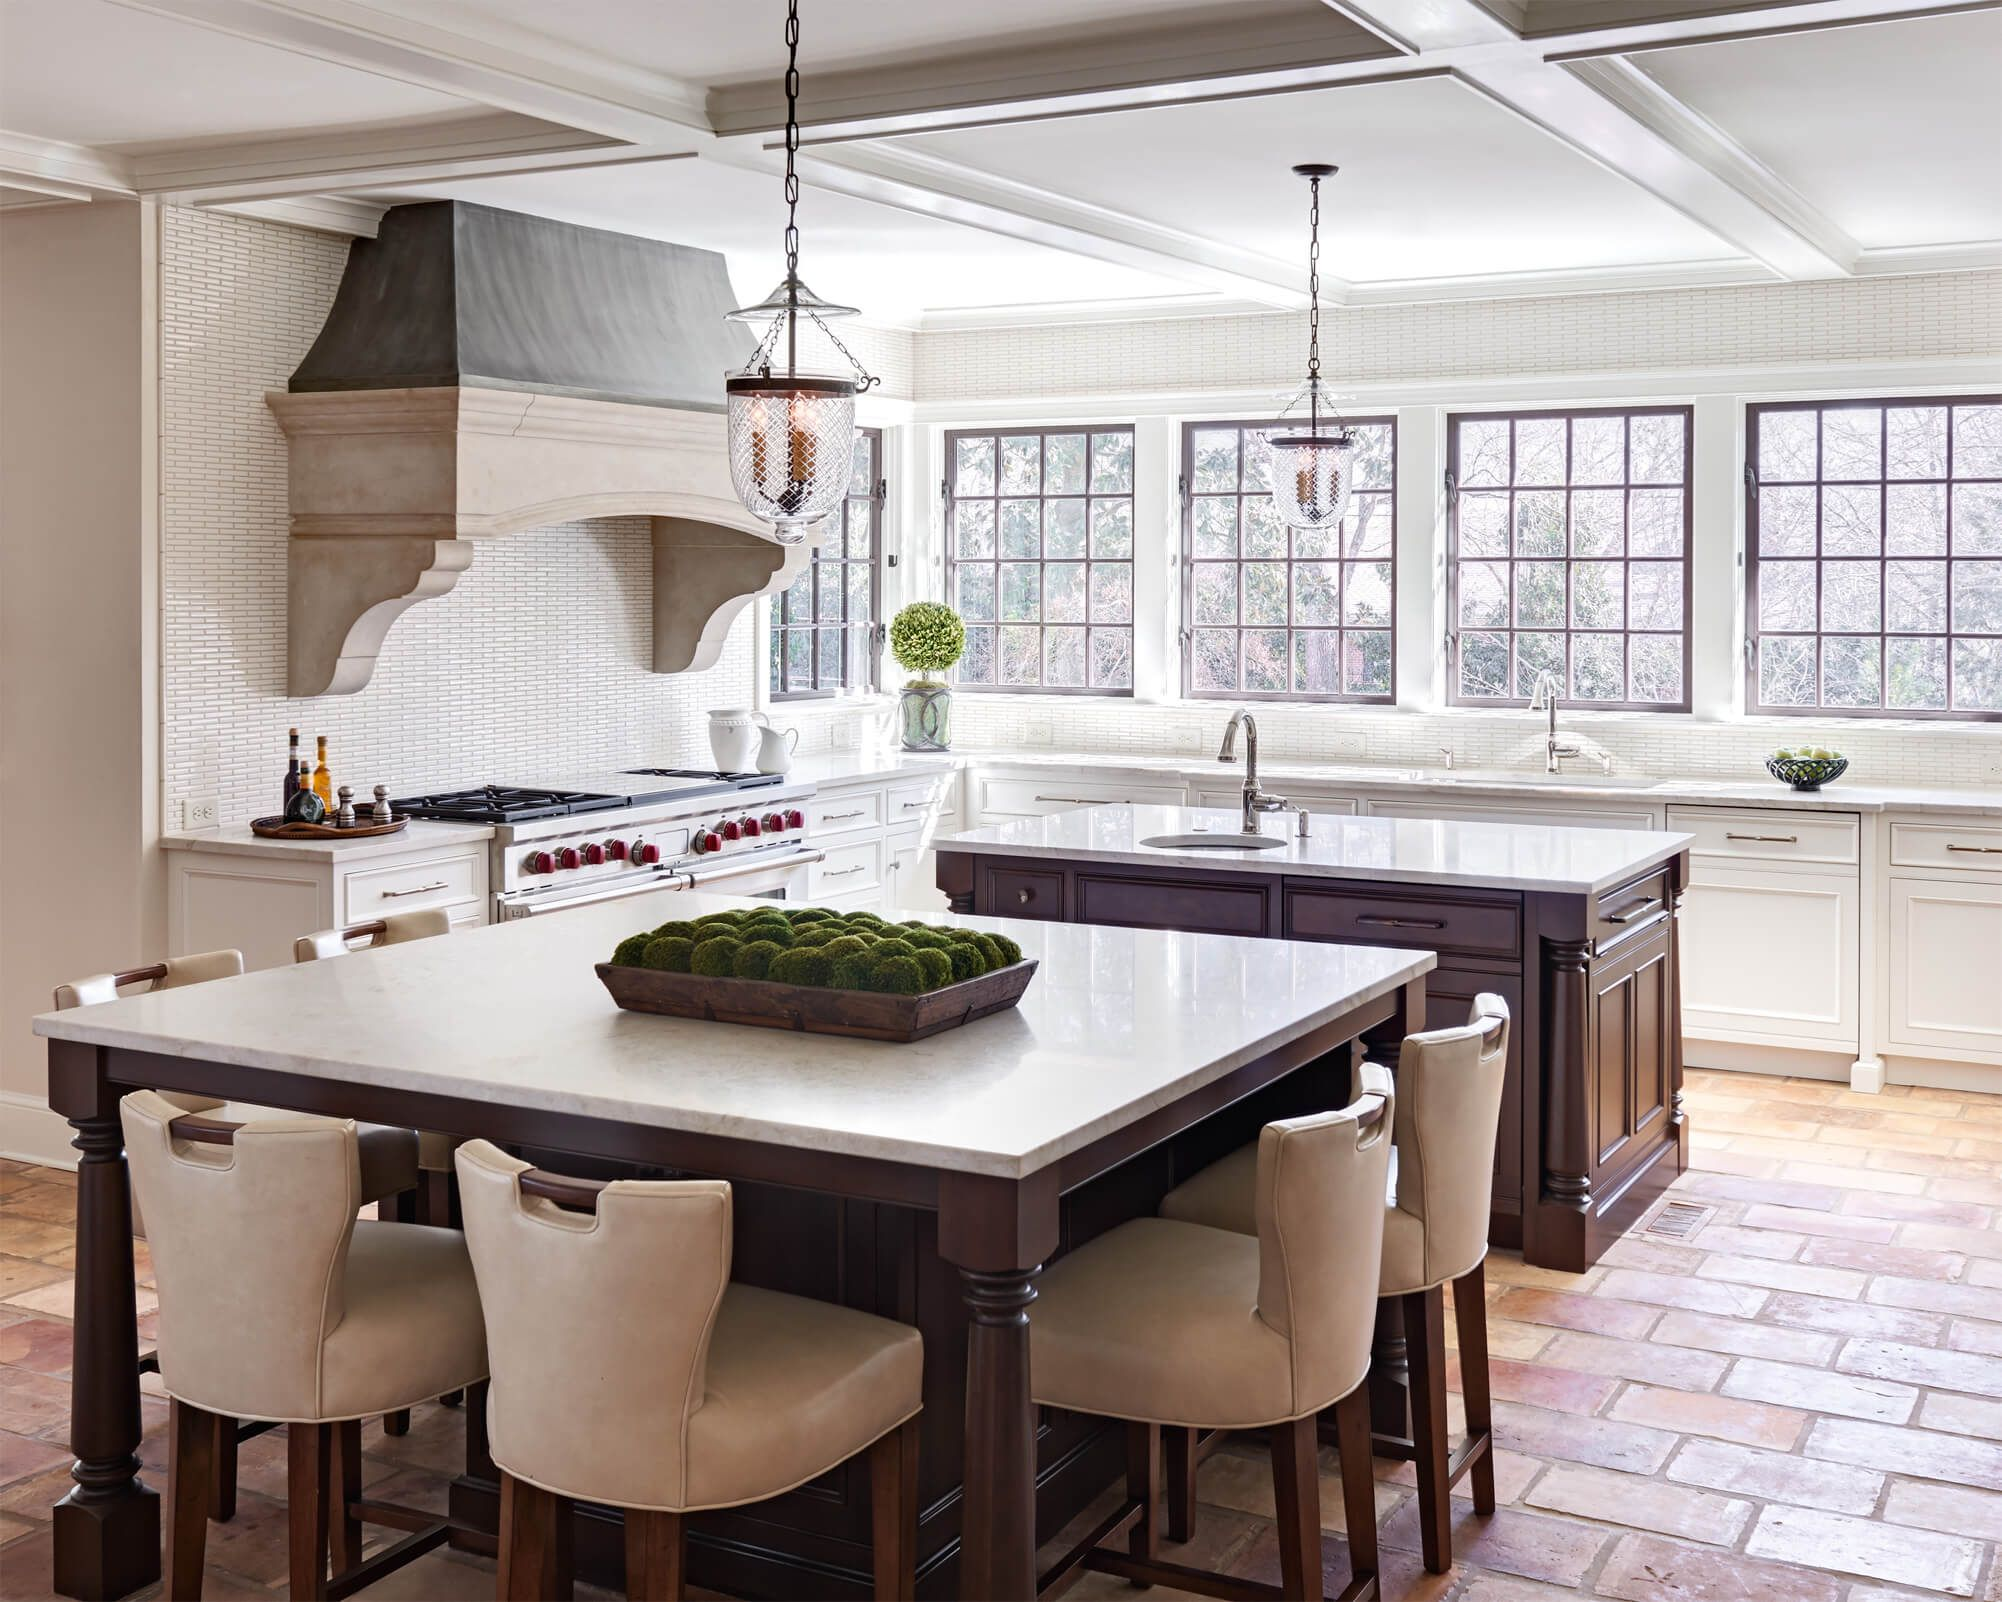 We Specialize in Custom Kitchen Cabinets and Cabinetry ...